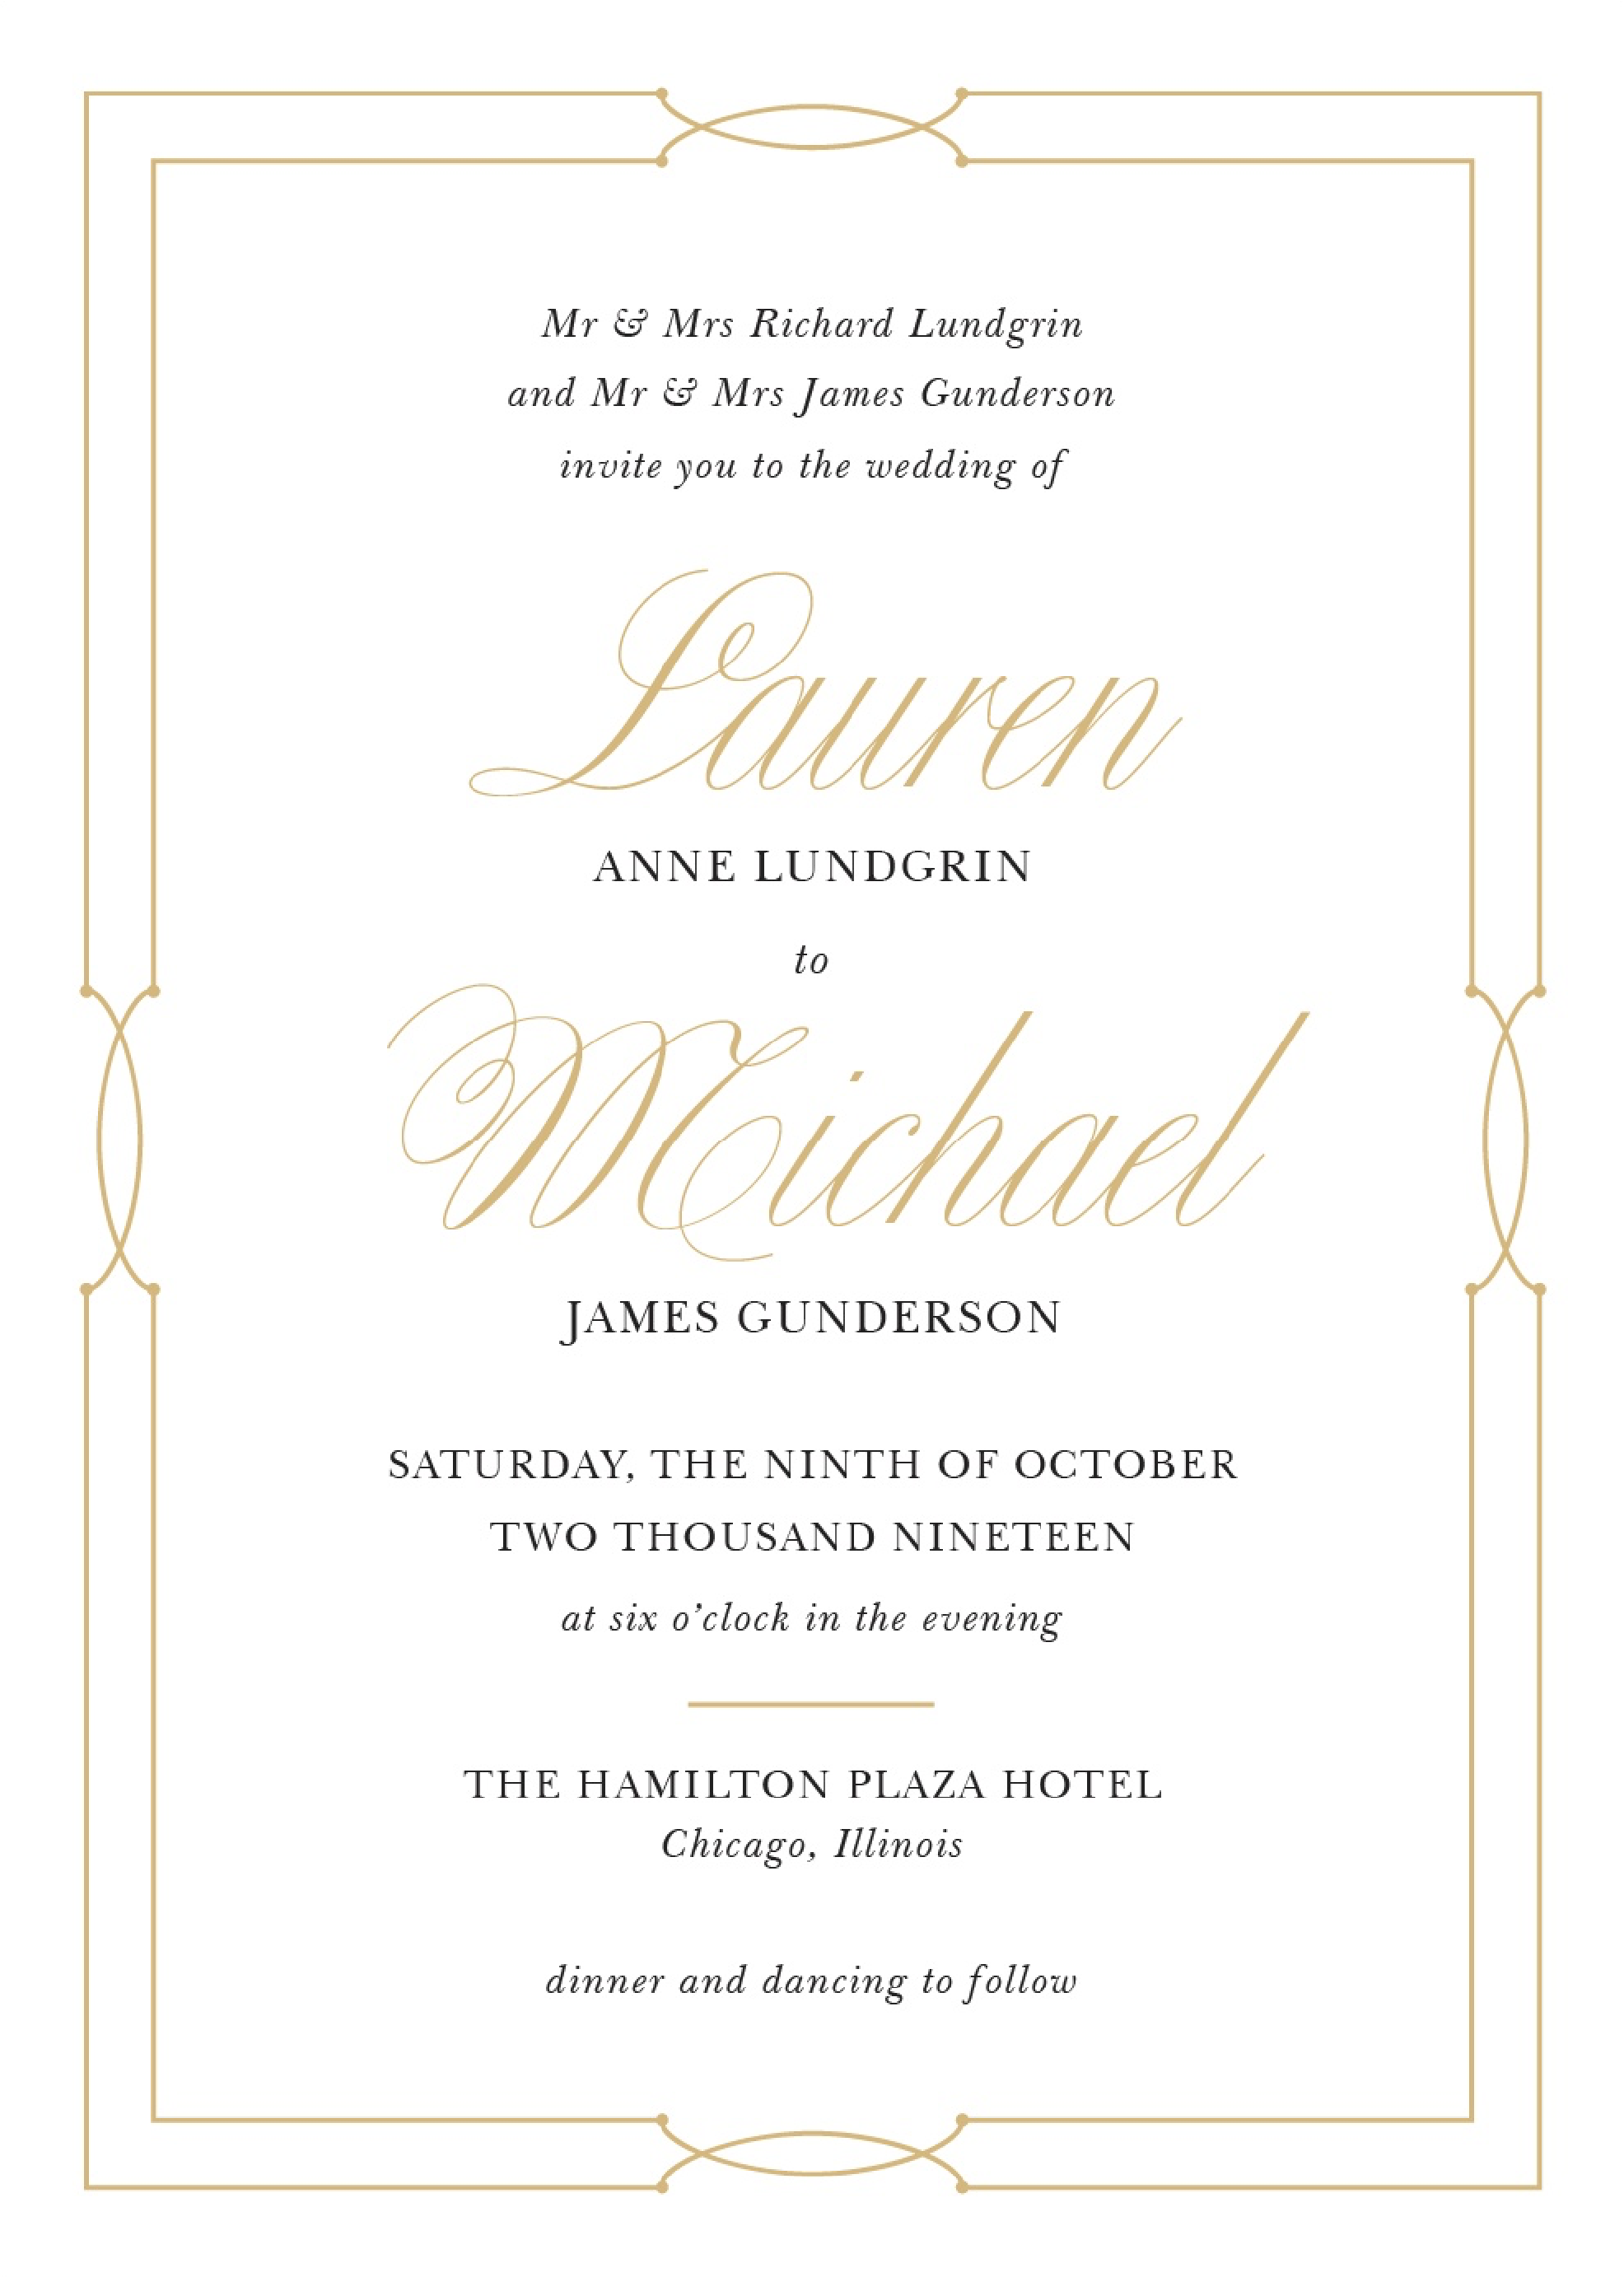 Wedding Invitation Template For Email Wedding Invitations Examples Sample Wedding Invitation Wording Wedding Invitation Wording Templates